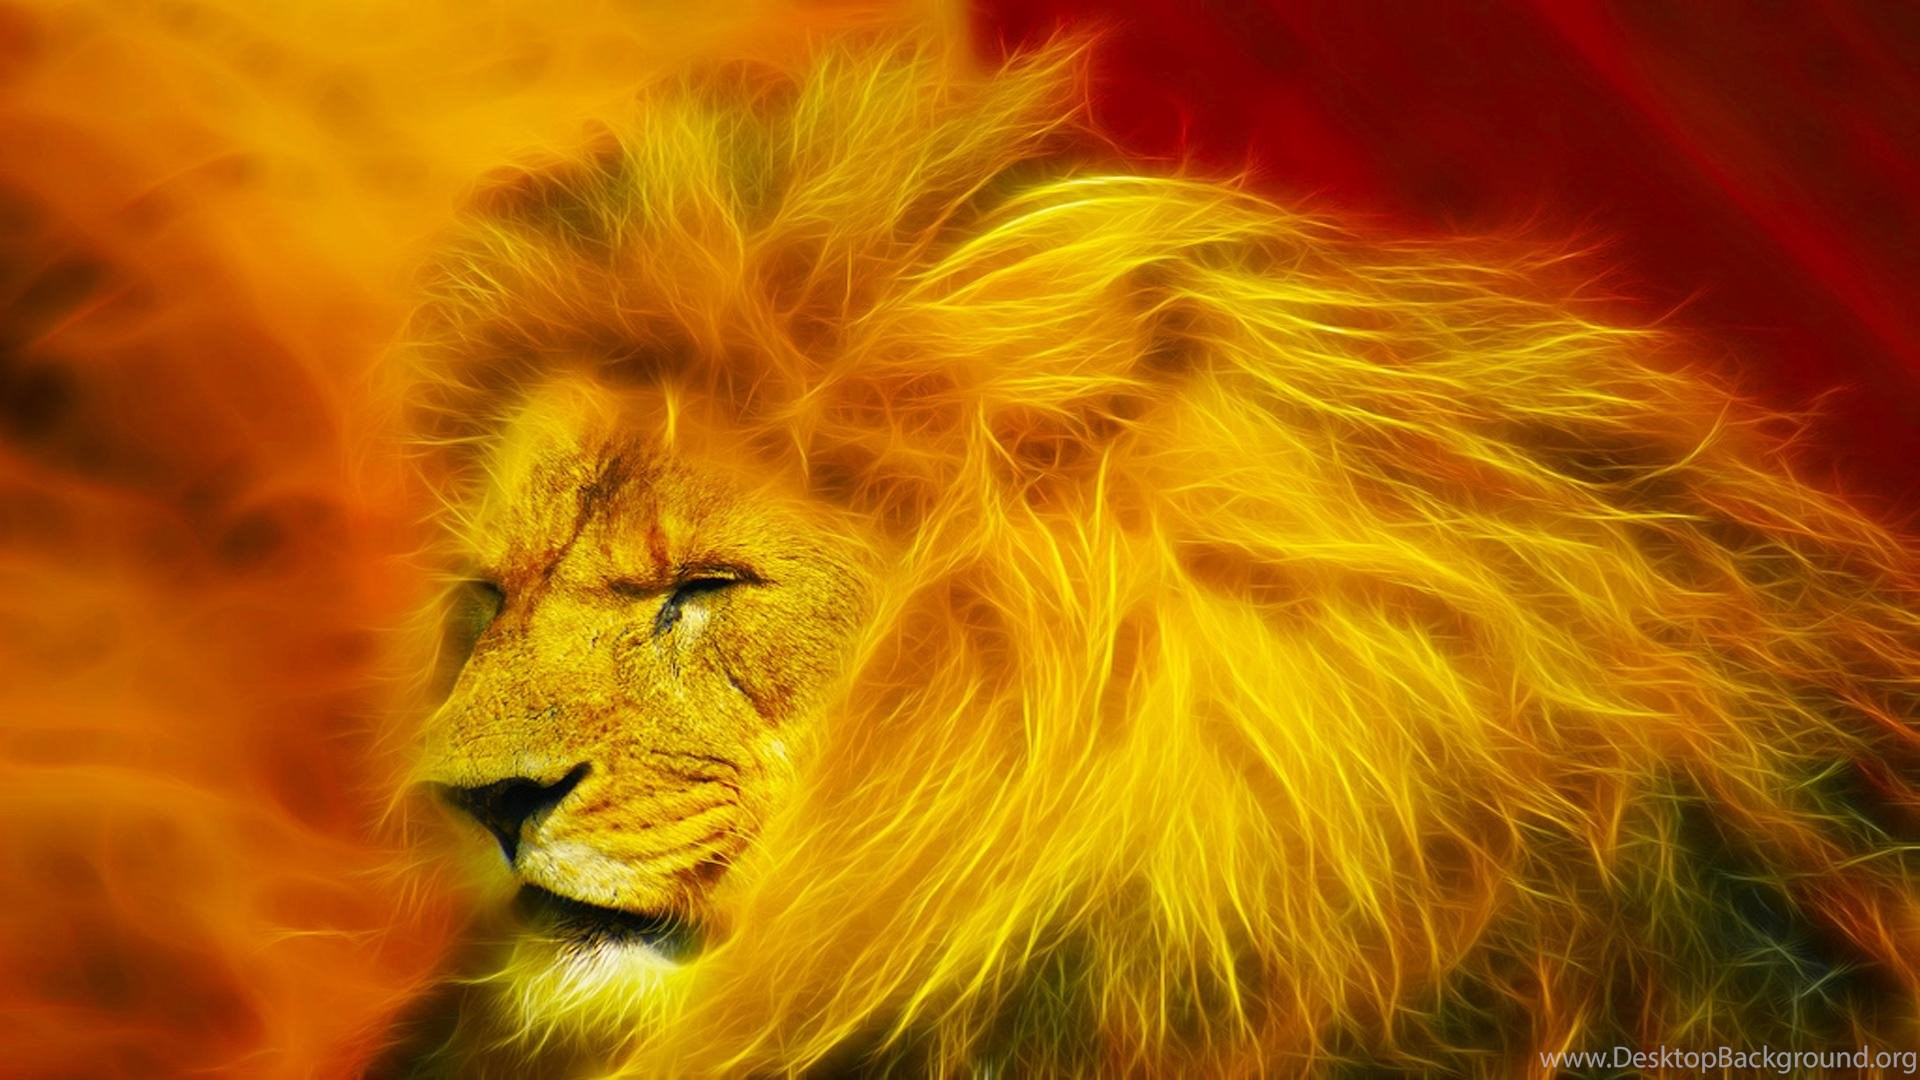 Abstract Lion Wallpapers Hd Images New Desktop Background